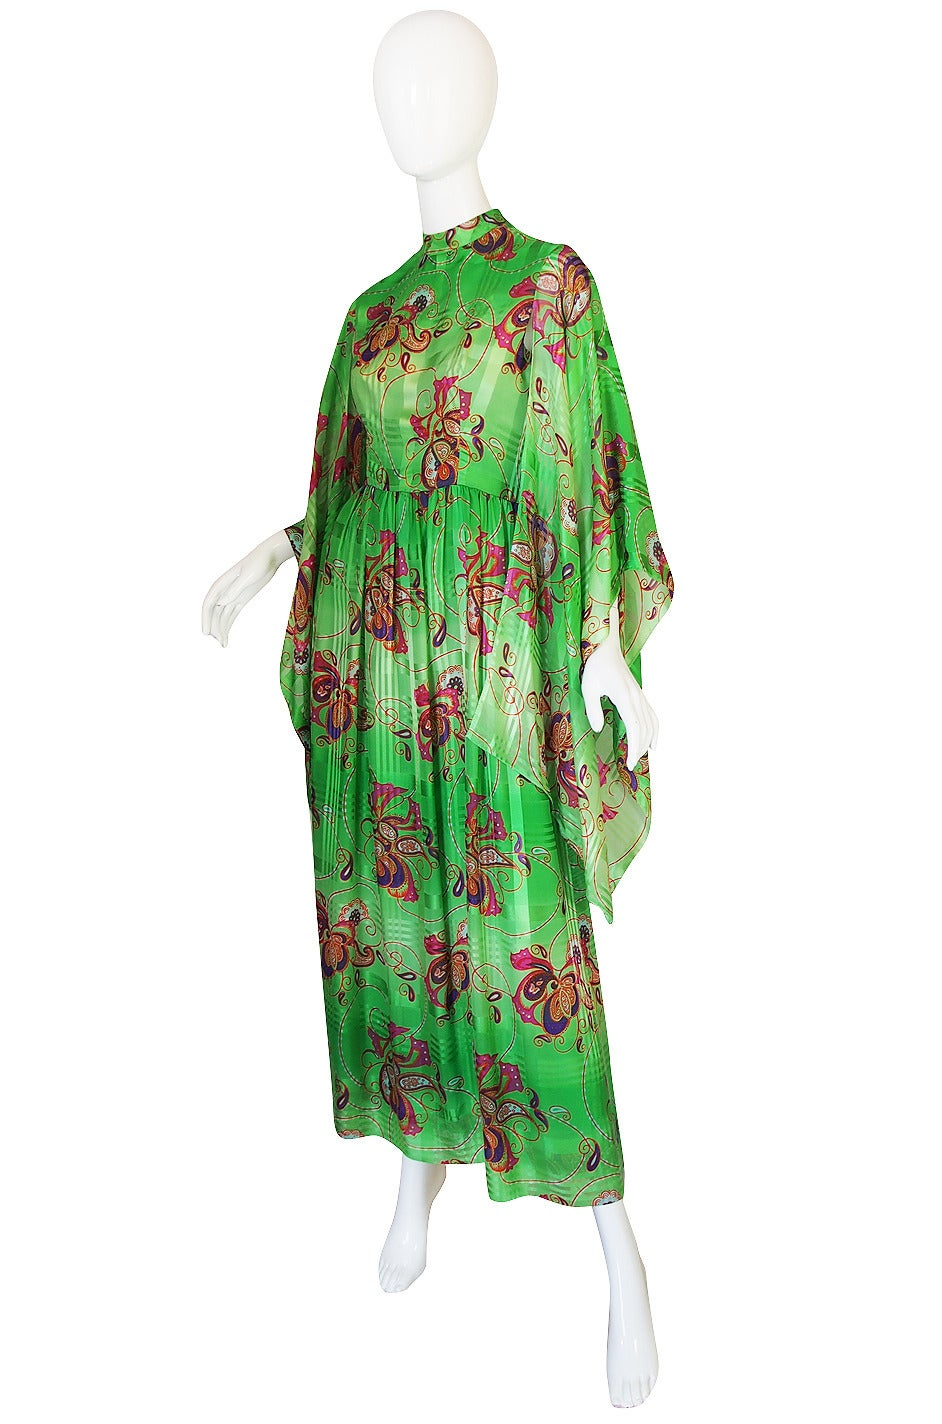 1970s Mollie Parnis Angel Kimono Sleeve Green Silk Dress In Excellent Condition For Sale In Toronto, CA